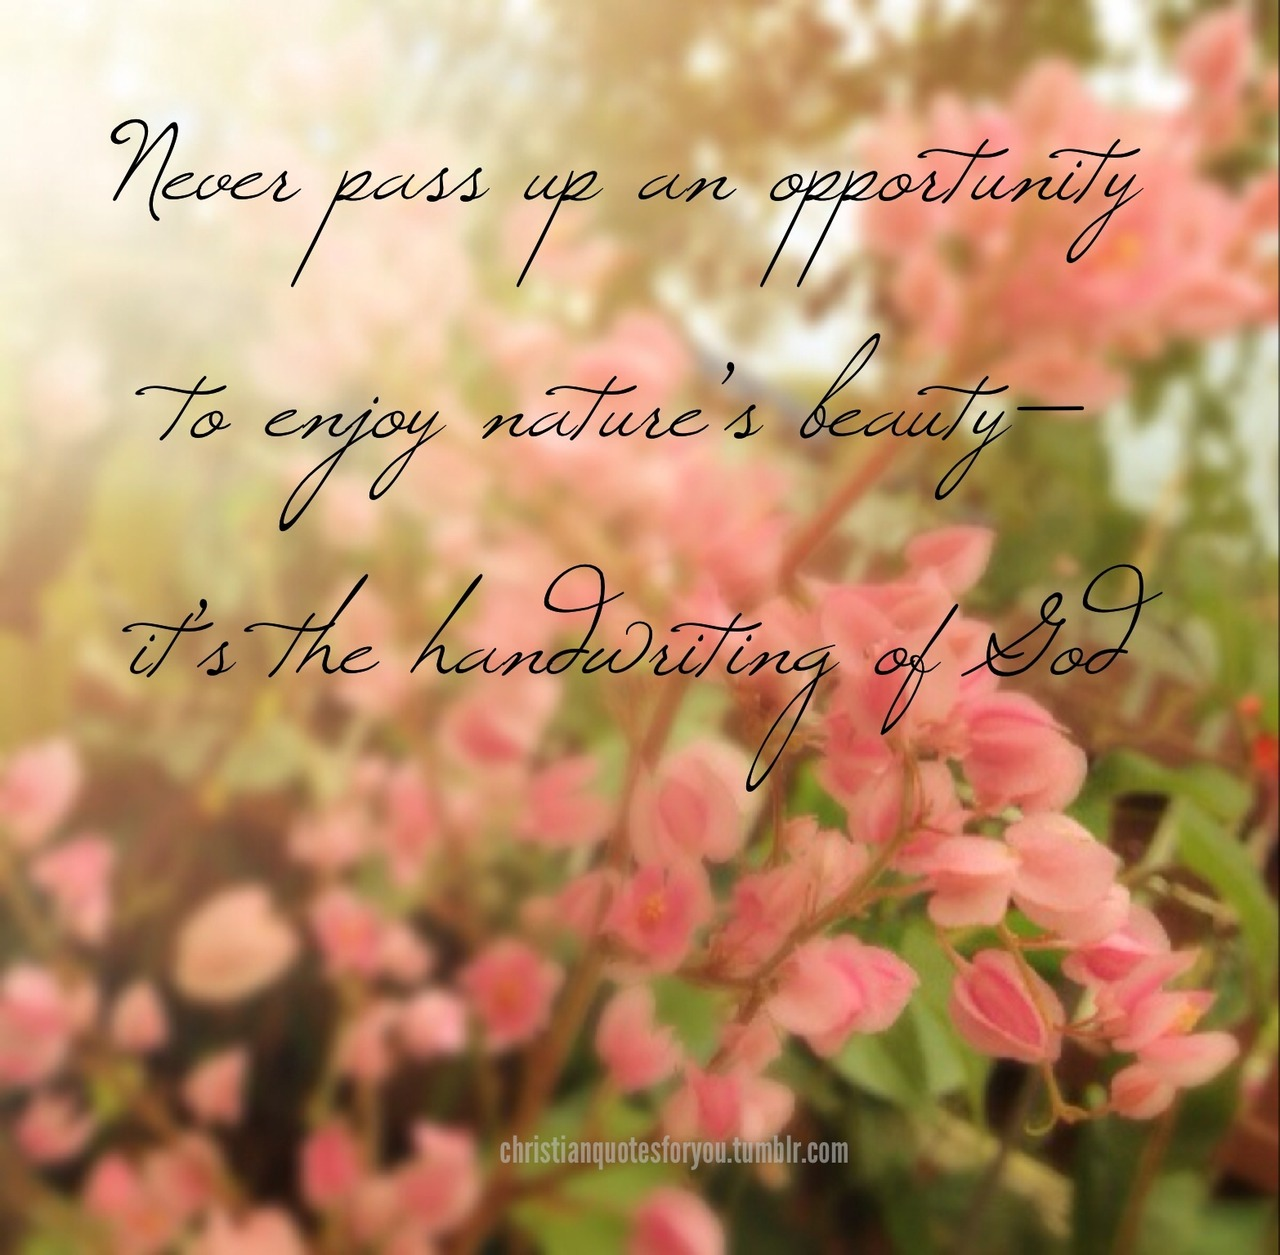 Quotes About Beauty In Nature 207 Quotes